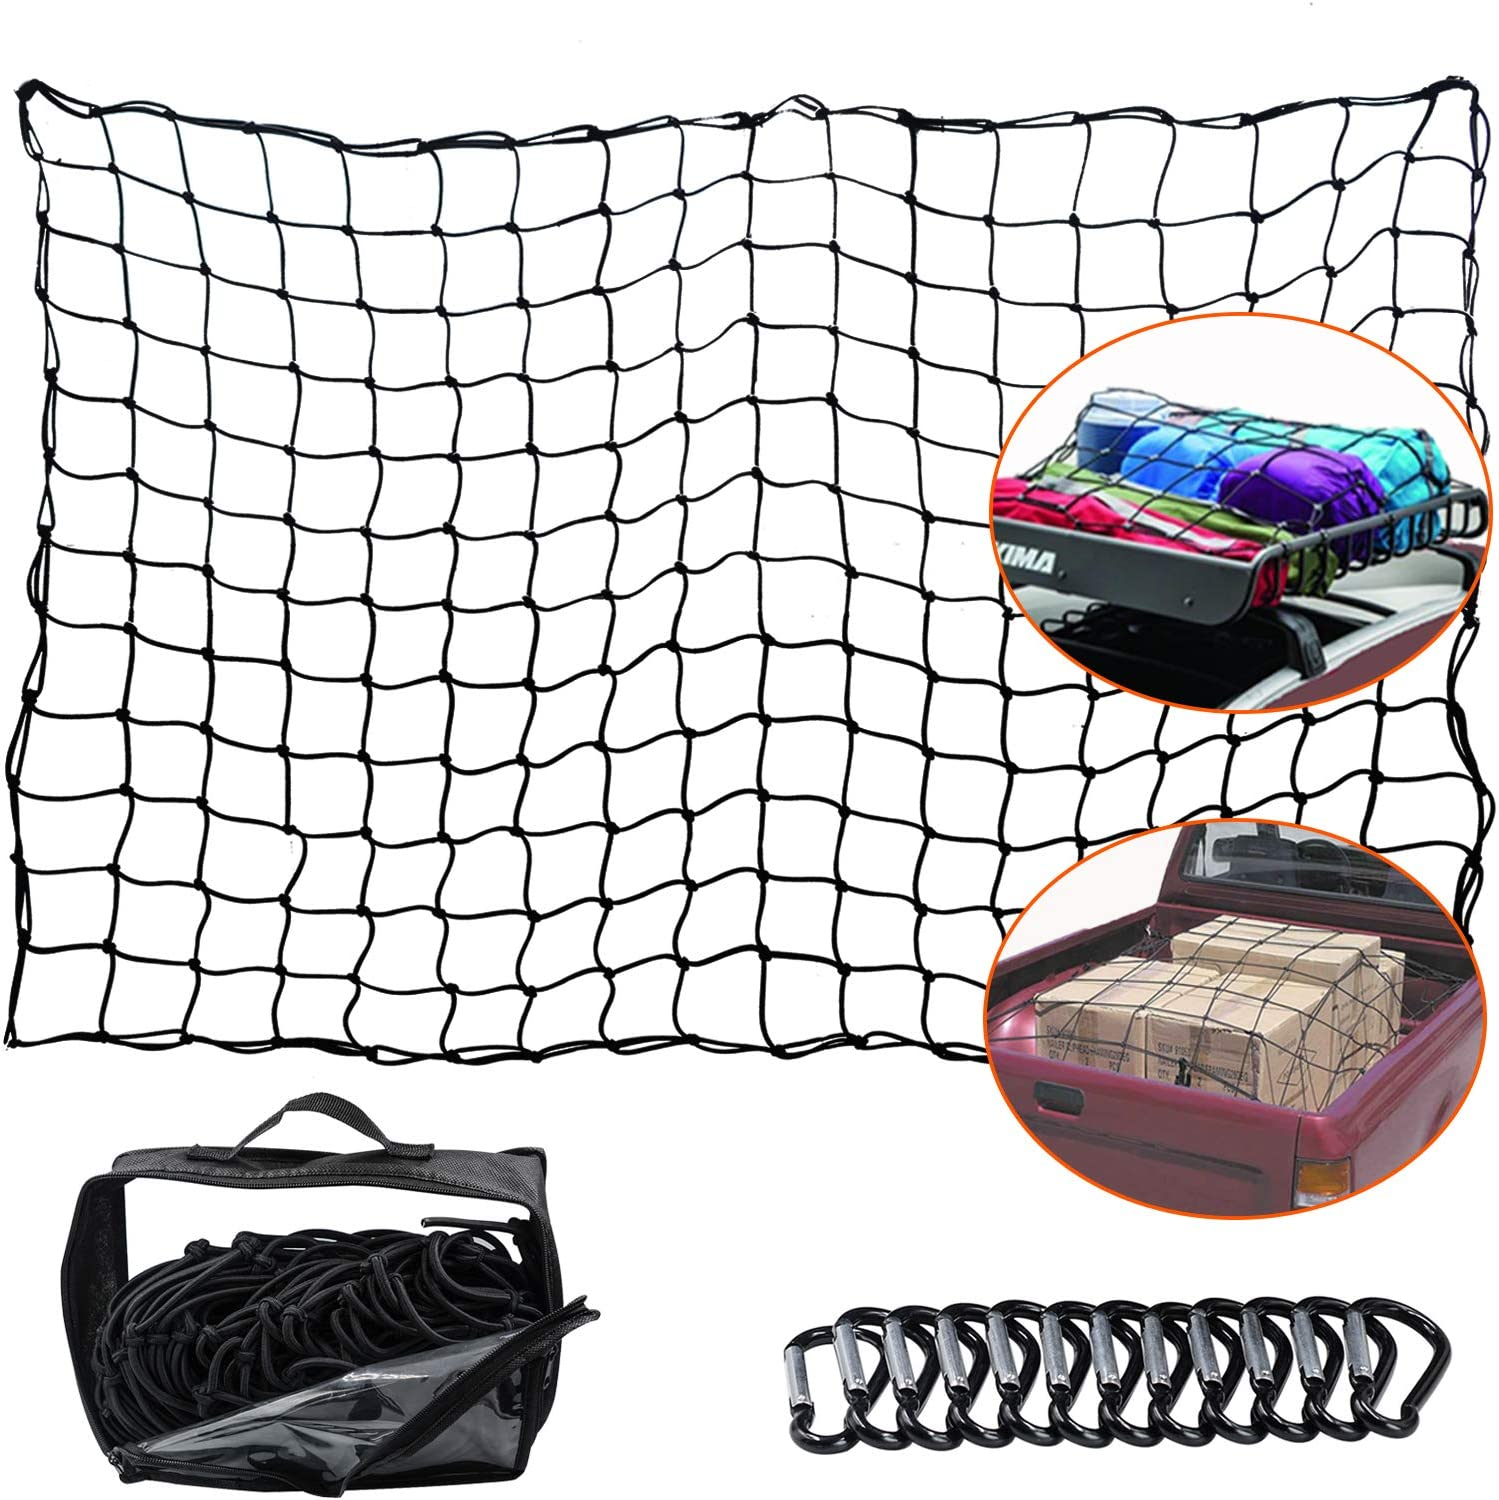 Heavy Duty 4x 6 Elastic Cargo Bungee Net Stretches to 8 x 12 for Roof Rack//Car//Trailer 4x4 Mesh Holds Small and Large Loads Tighter WUPP Cargo Net for Pickup Truck Bed 12 D-Clip Carabiners